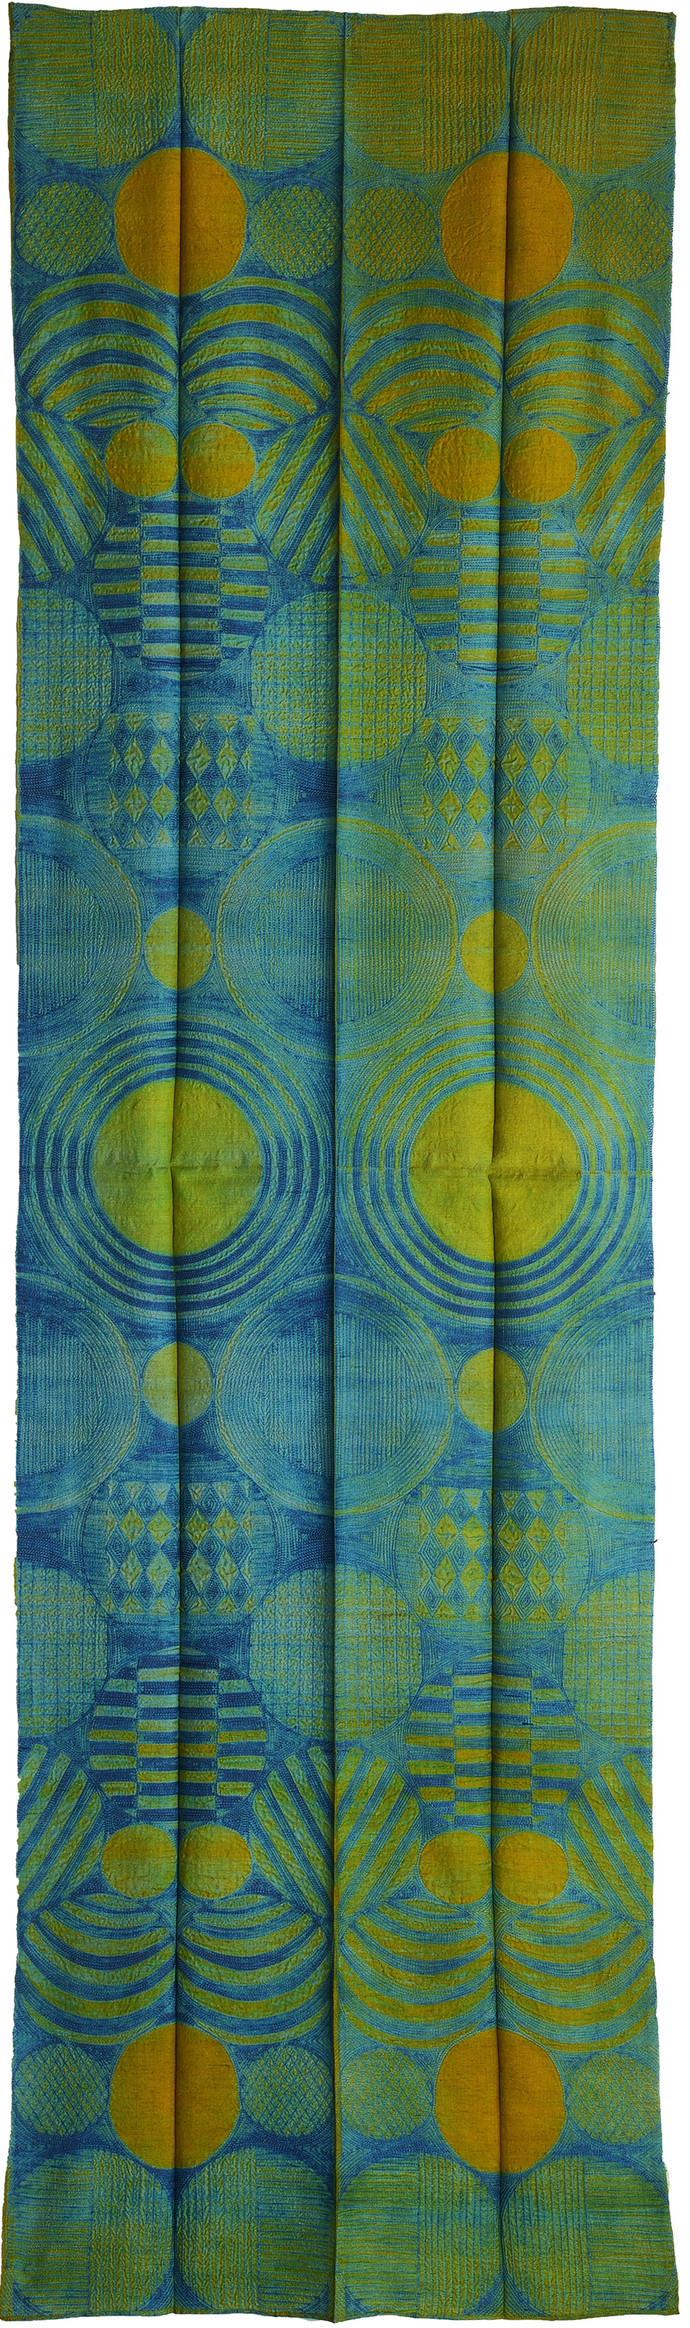 Yellow Water by Neha Puri Dhir, Geometrical Textile, Resist Dyeing on Silk, Green color